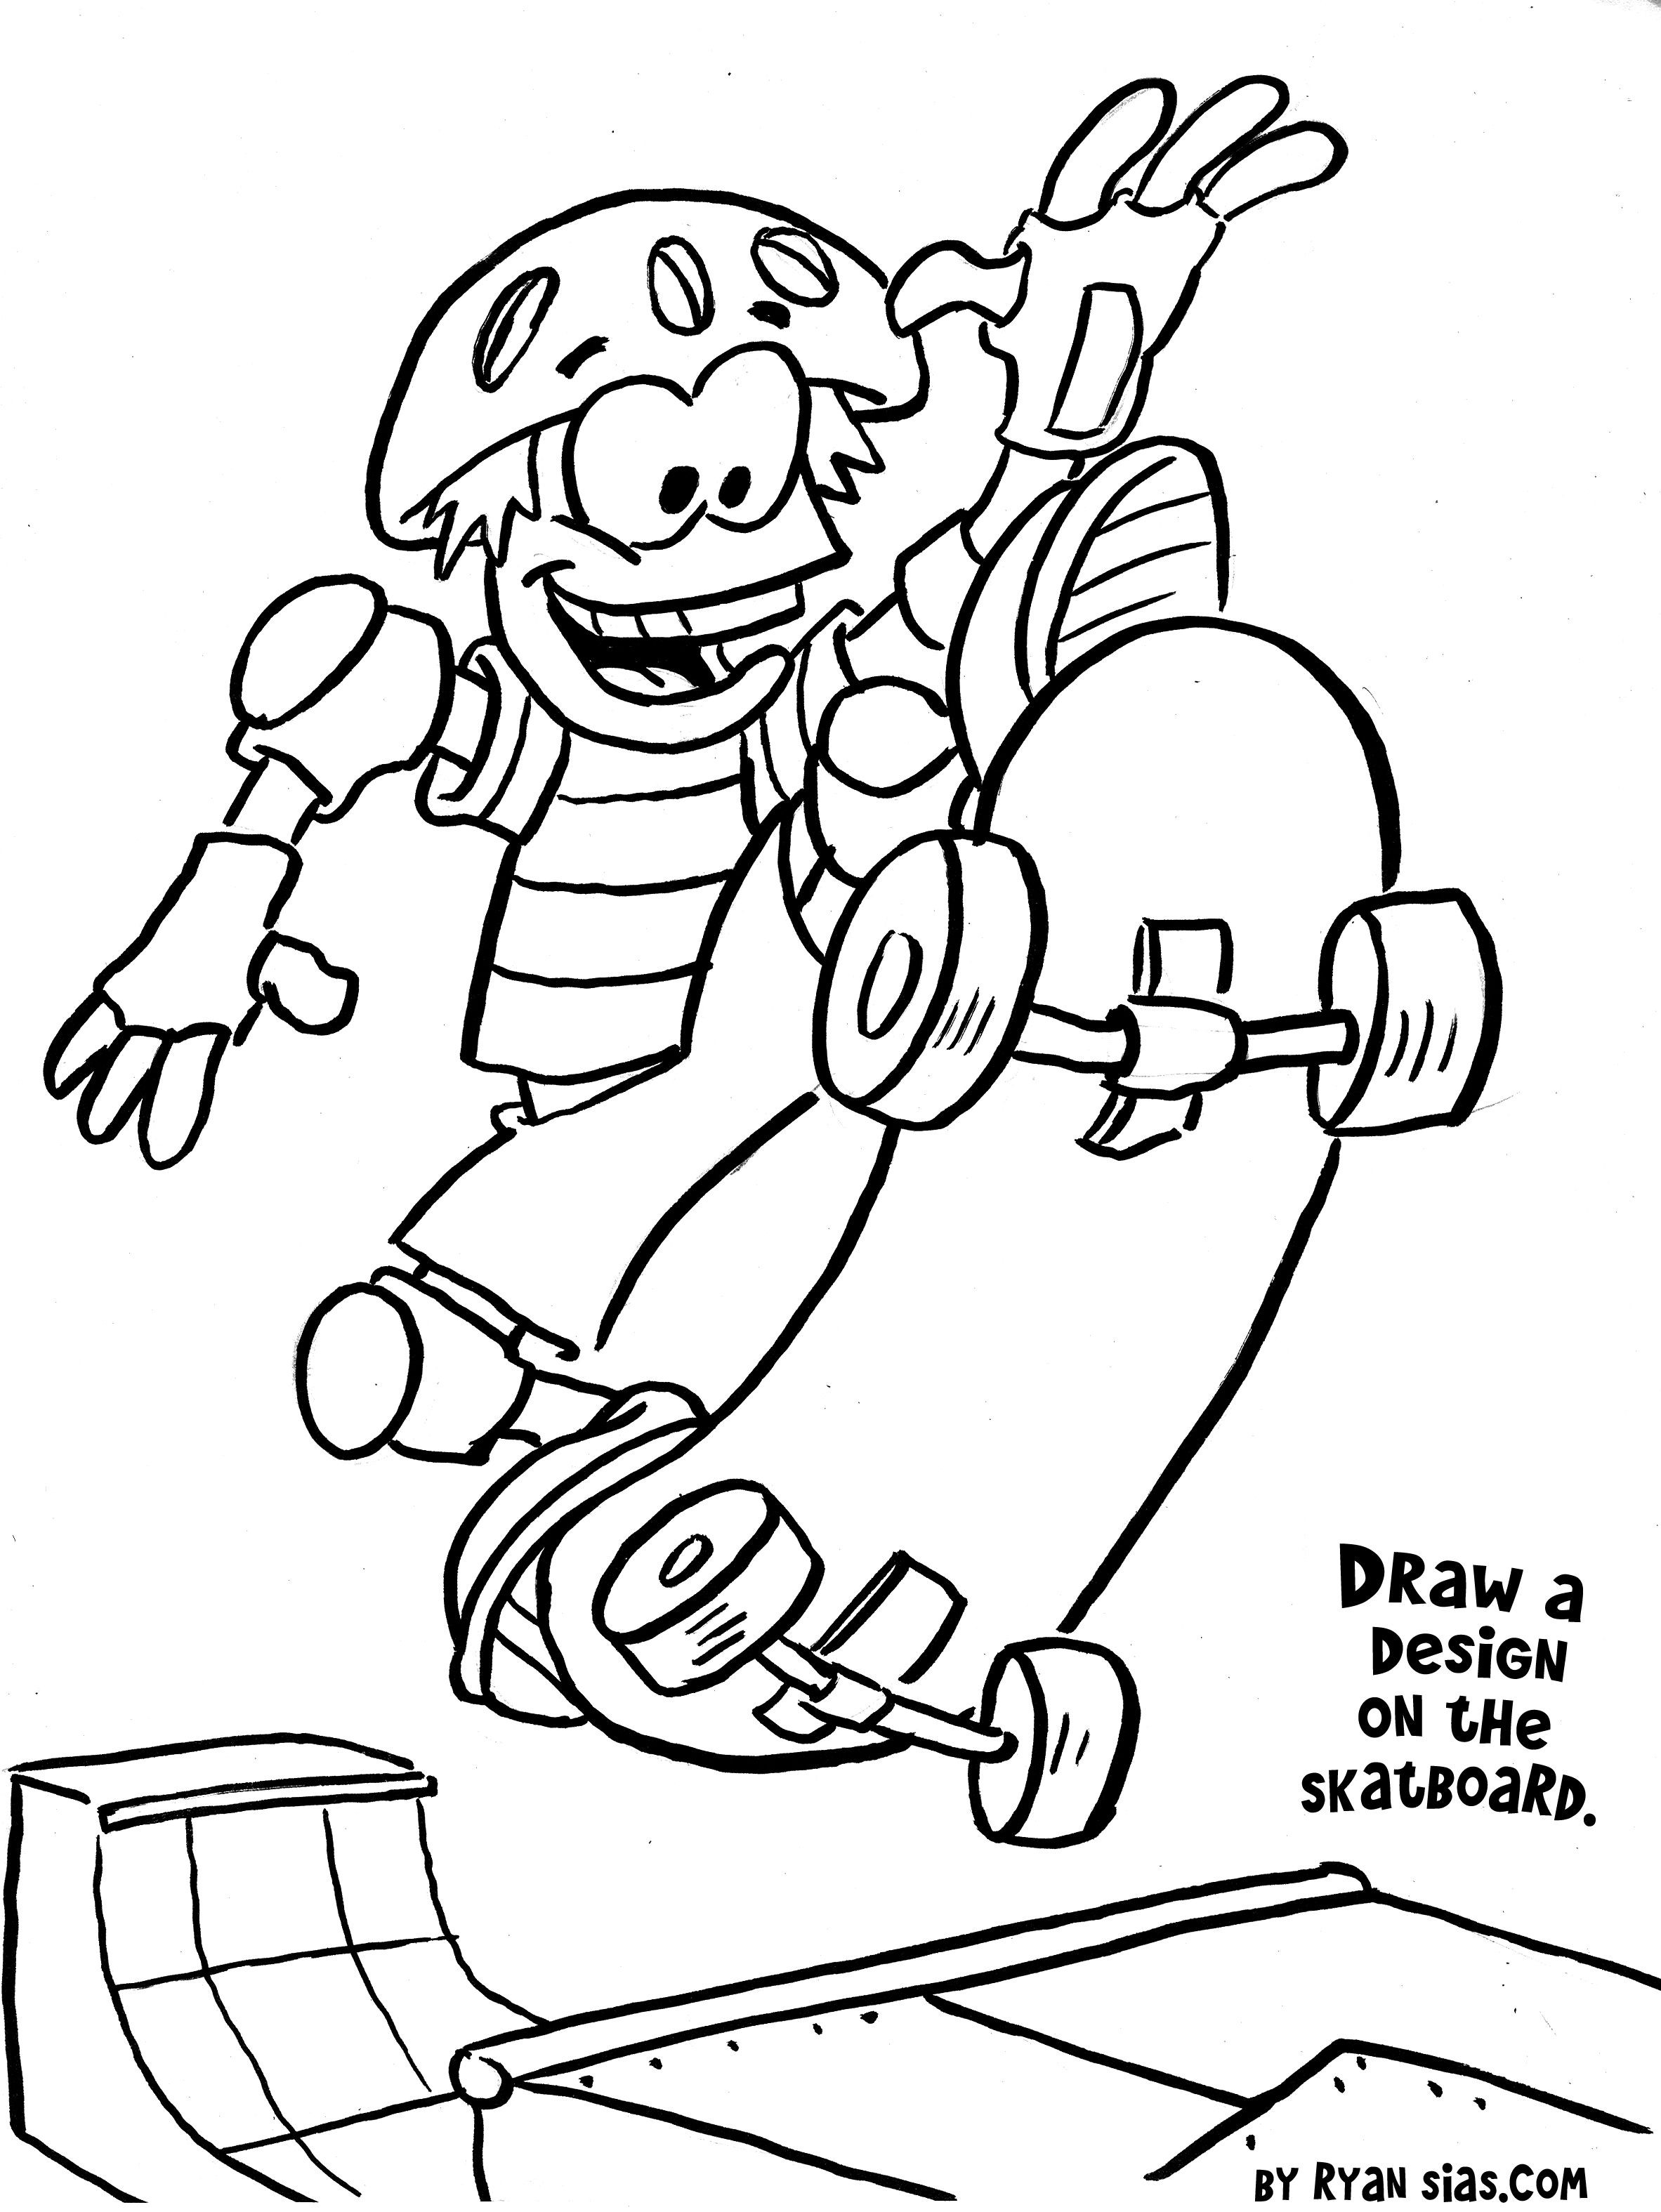 Best ideas about Sports Printable Coloring Pages . Save or Pin Free Printable Sports Coloring Pages Skateboard Now.